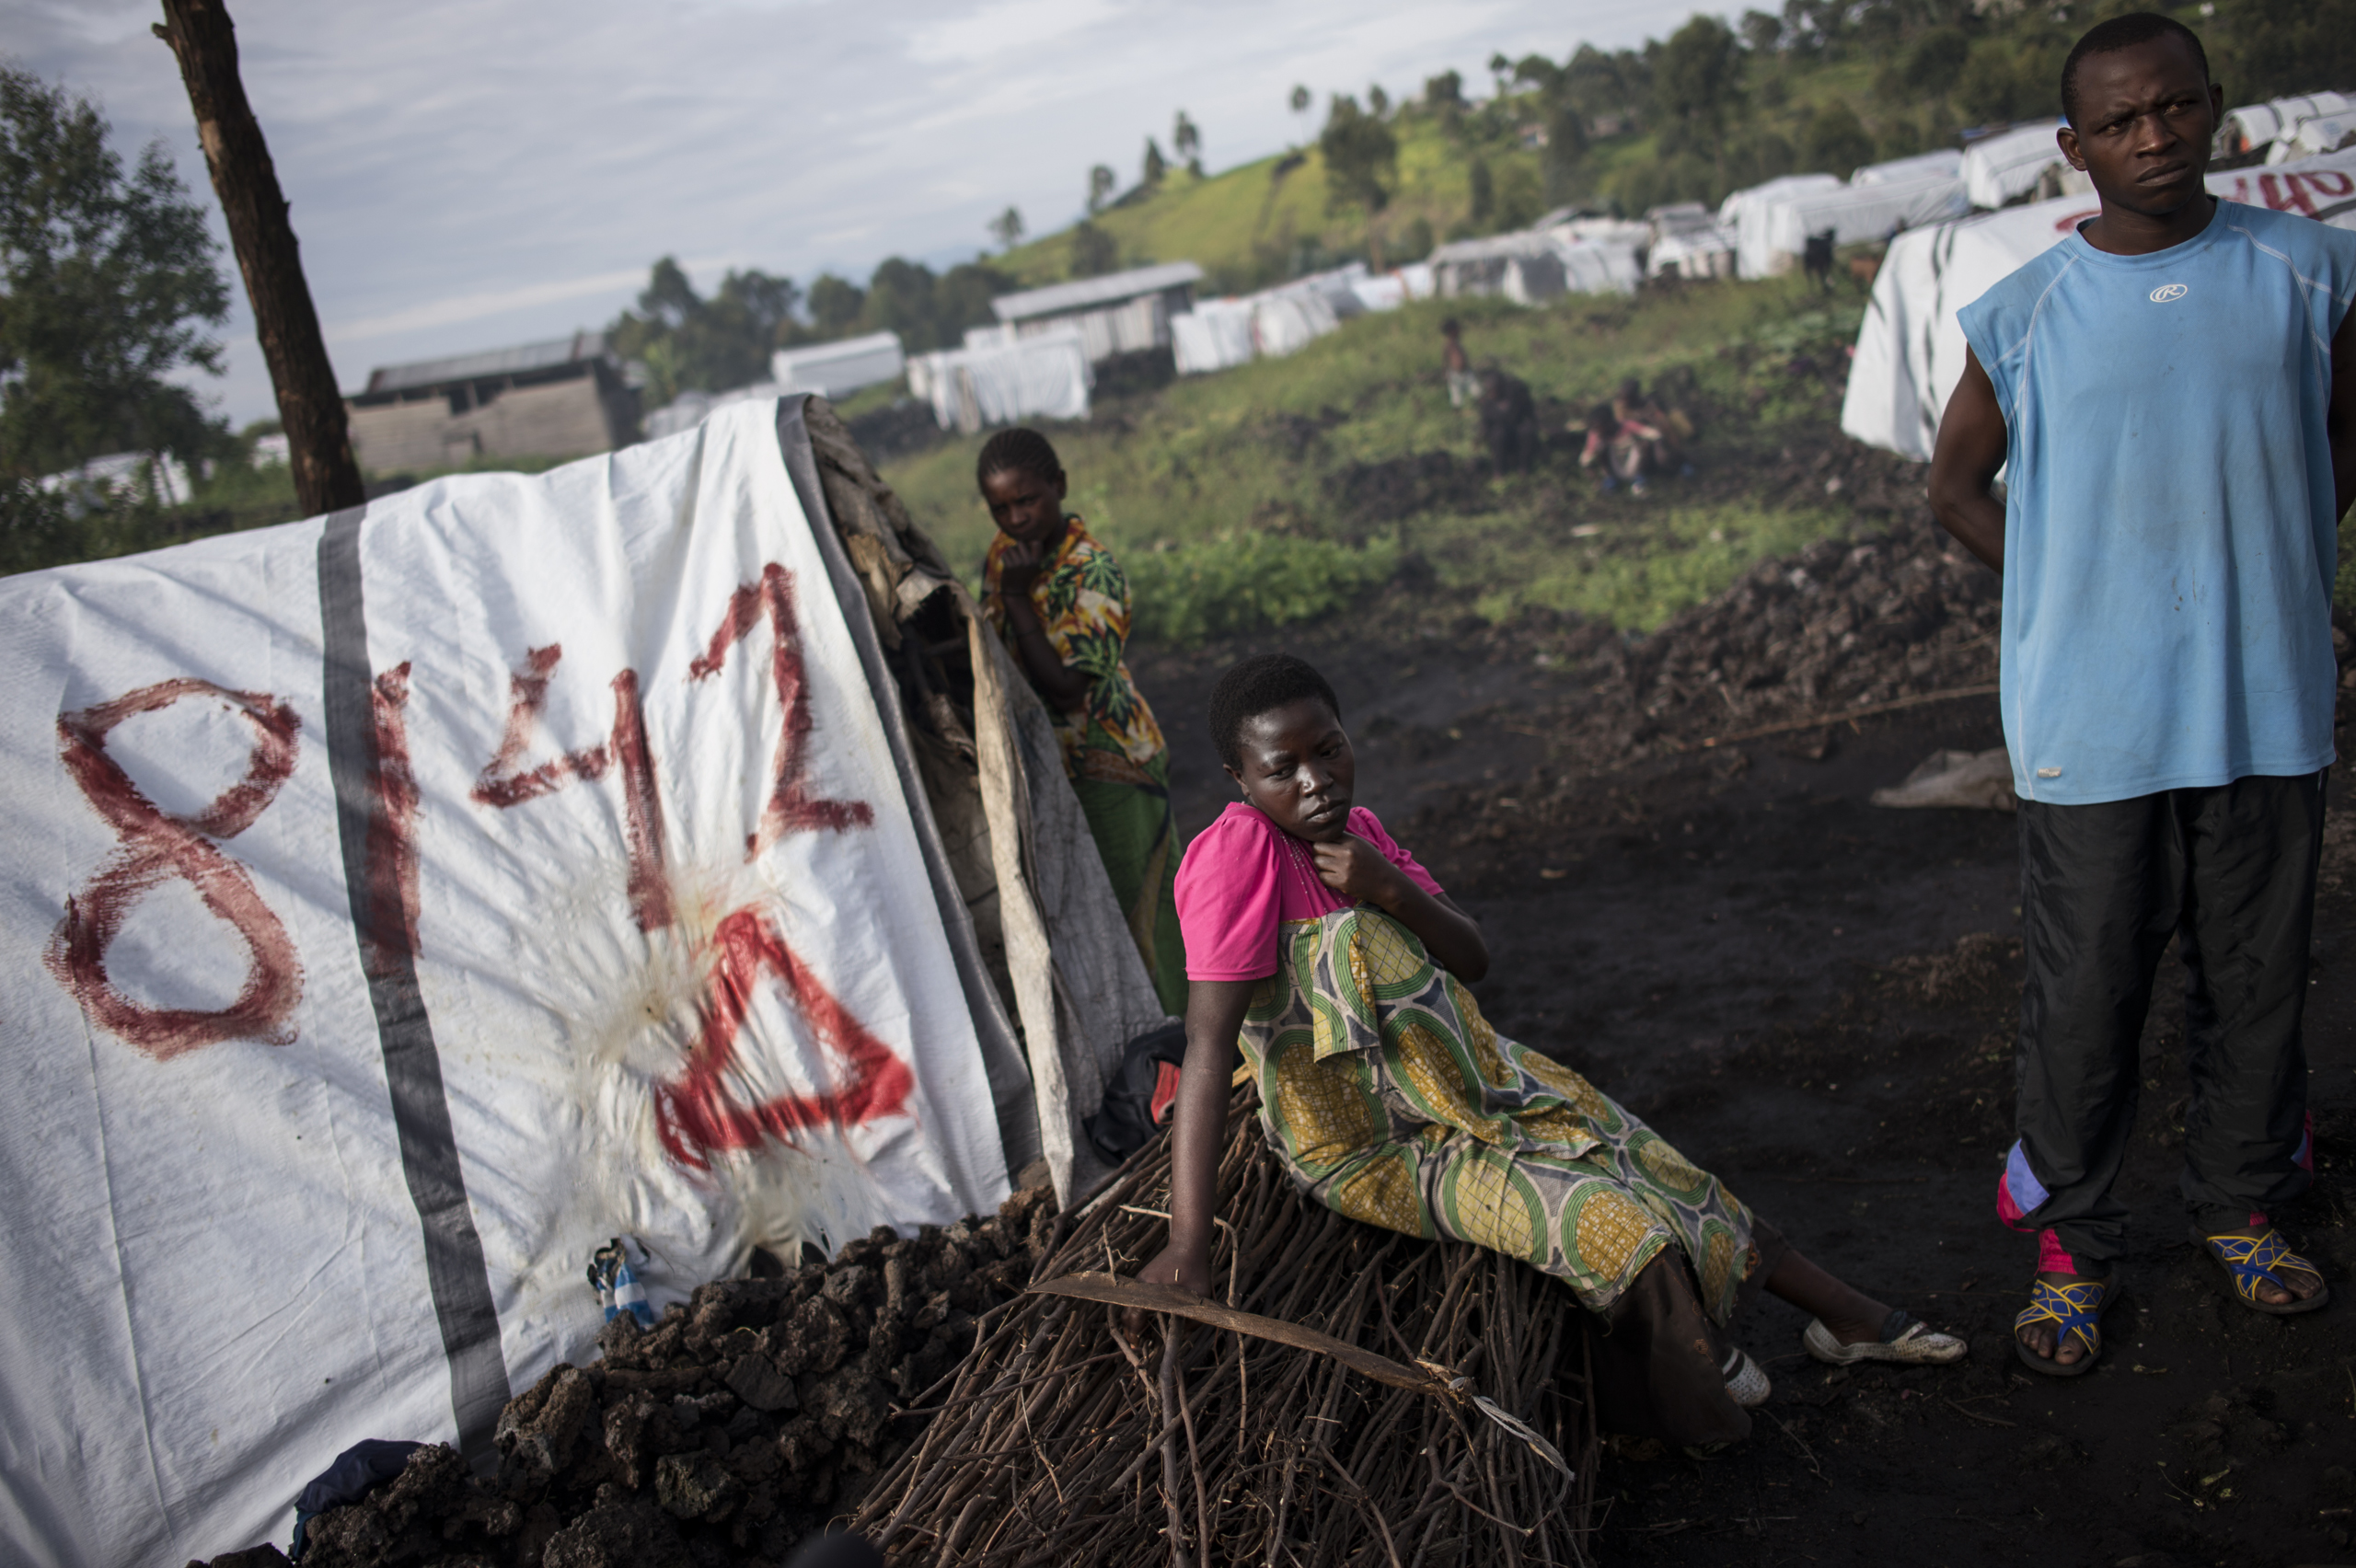 Maiombi Thomas,16, sits alongside her brother, Innocent Kongomani, 22, in the Mugunga 1 camp for internally displaced people, outside Goma,  the Democratic Republic of Congo, Dec. 5, 2015. Maiombi became pregnant after she was raped by a ranger when she went to get firewood outside the camp.